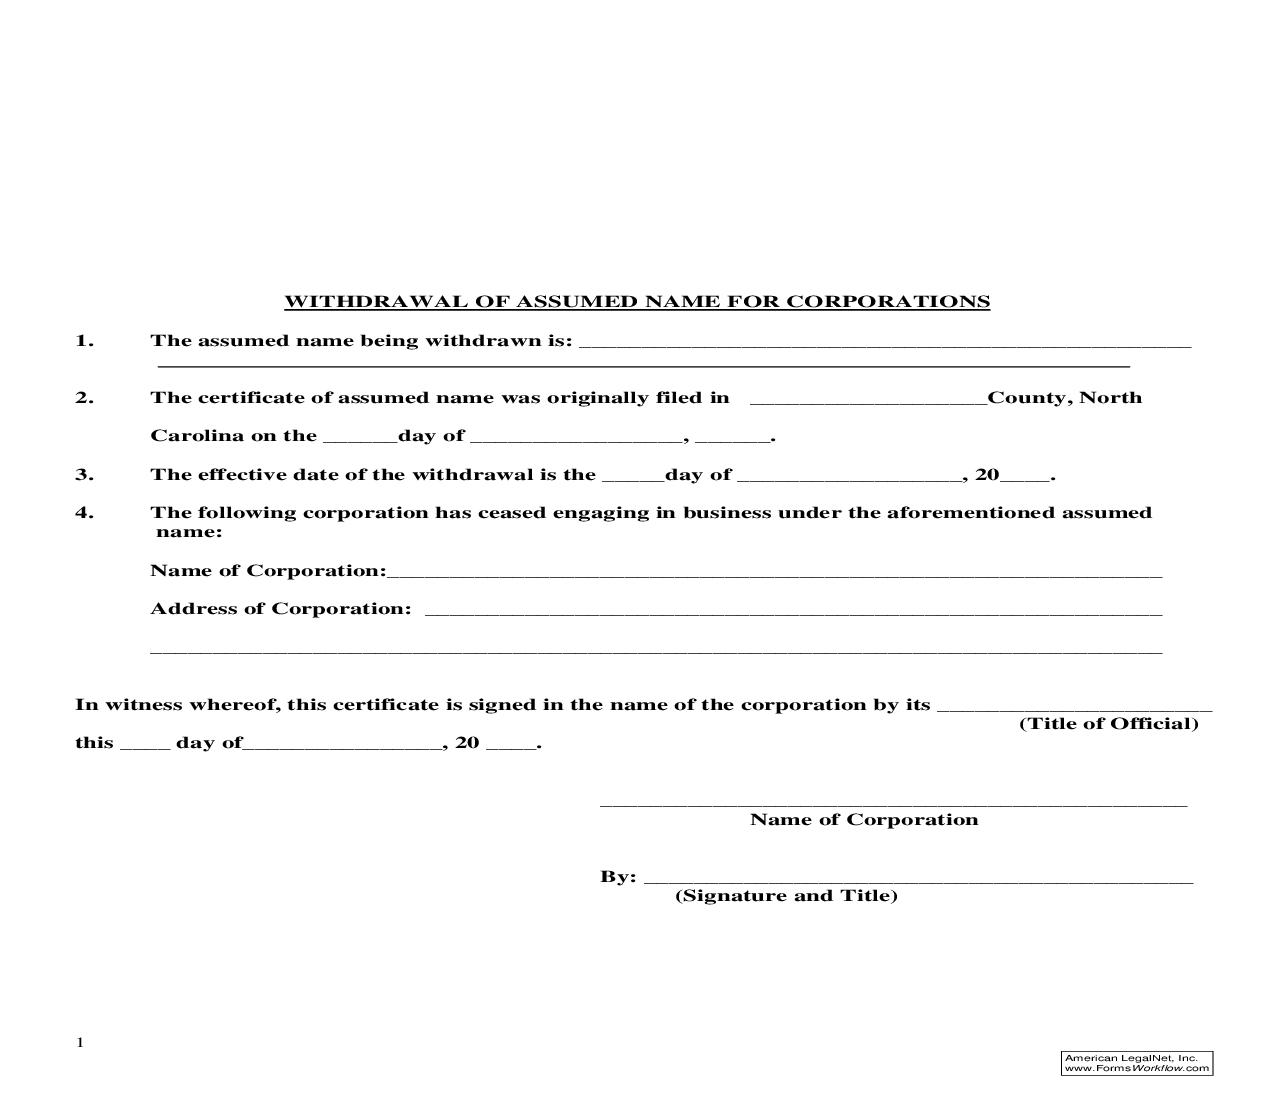 Withdrawal Of Assumed Name For Corporations | Pdf Fpdf Doc Docx | North Carolina